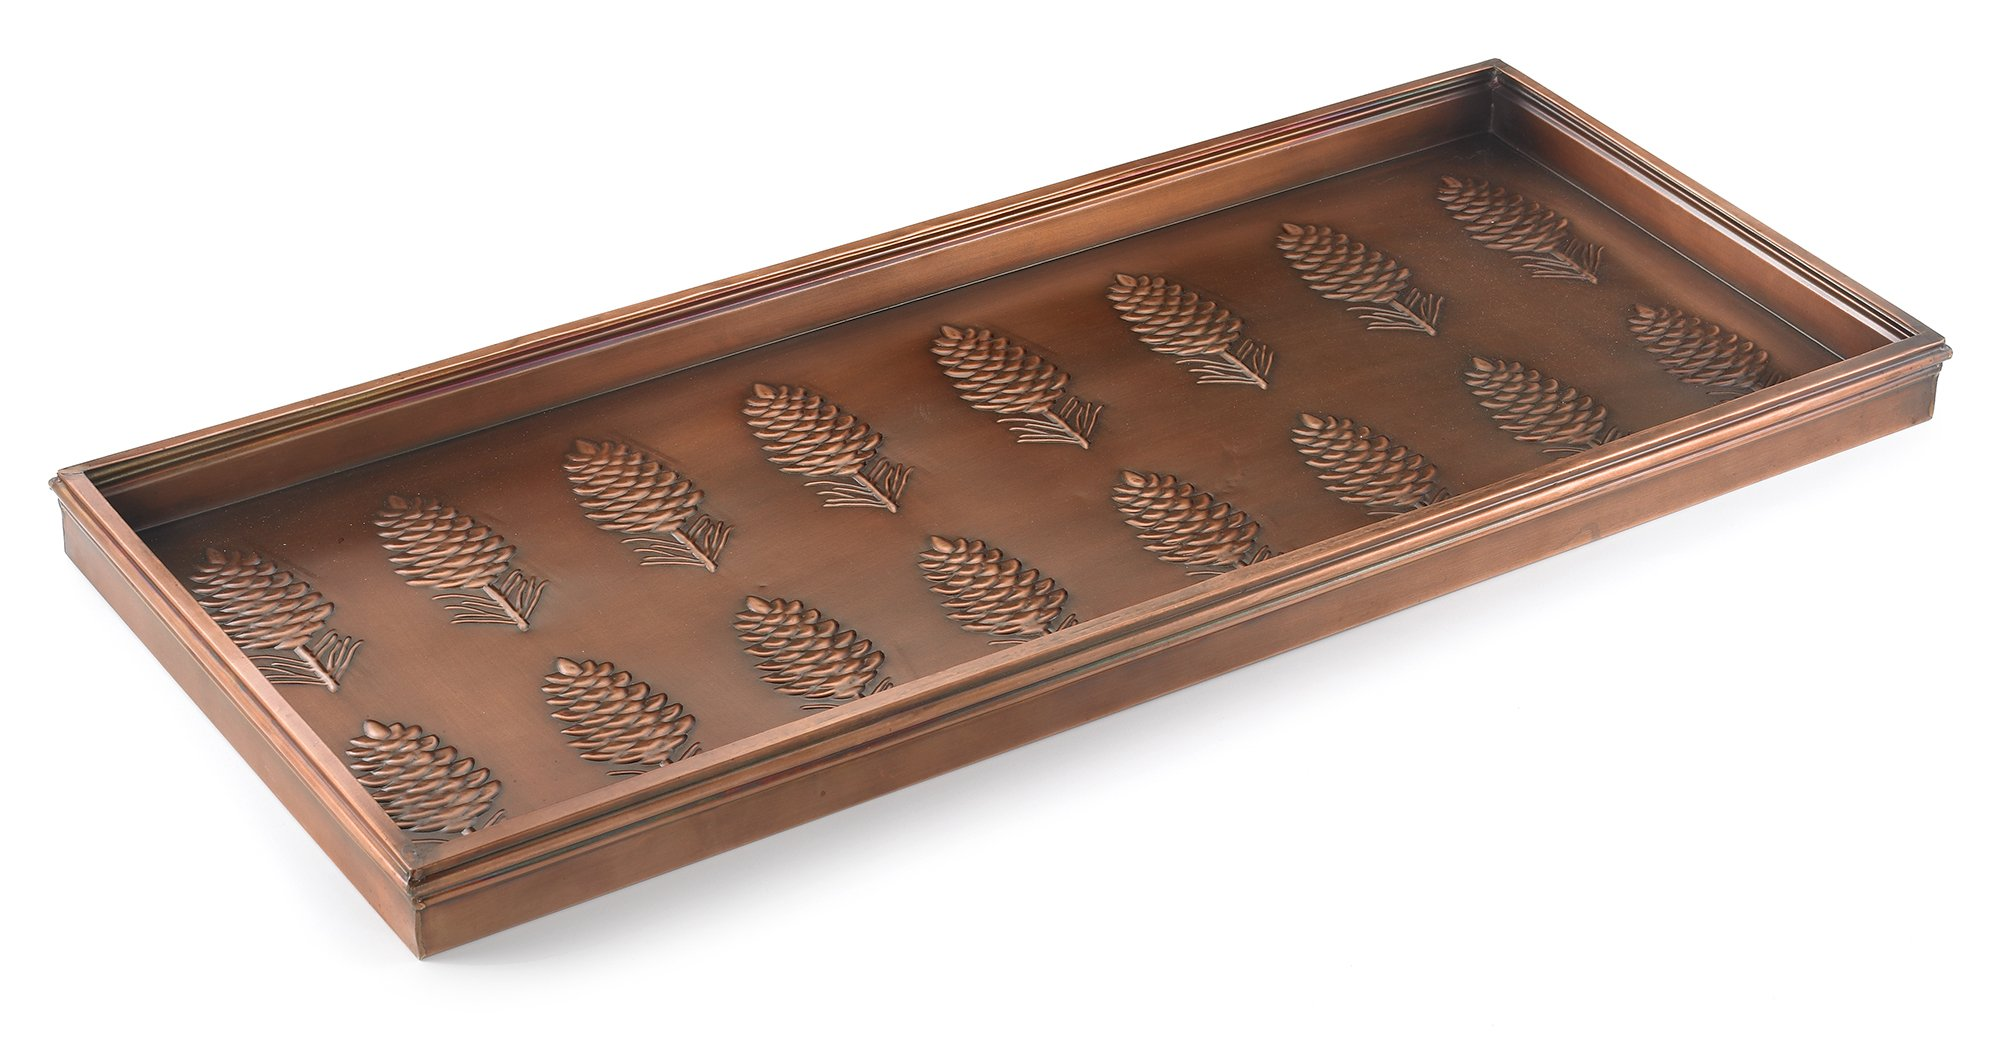 Good Directions Pine Cones Multi-Purpose Boot Tray / Shoe Tray - Copper Finish (34 inch) - Plants, Pet Bowl, Garage, Entryway, Entrance, Foyer by Good Directions